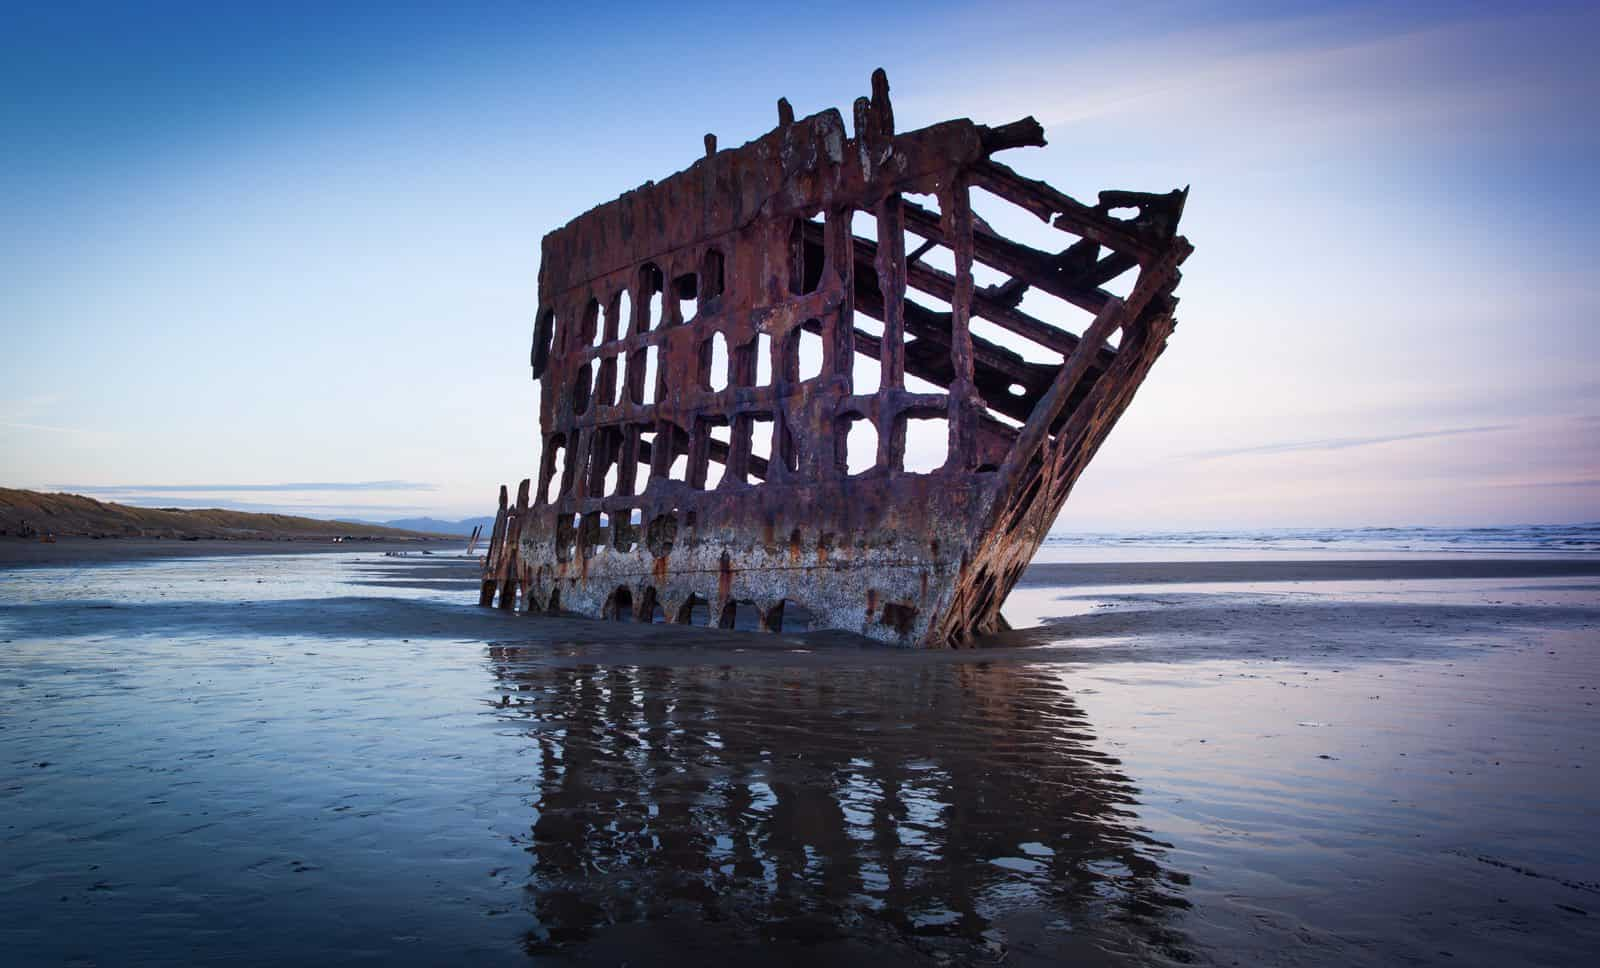 picture-of-peter-iredale-shipwreck-warrenton-oregon 4889x2957